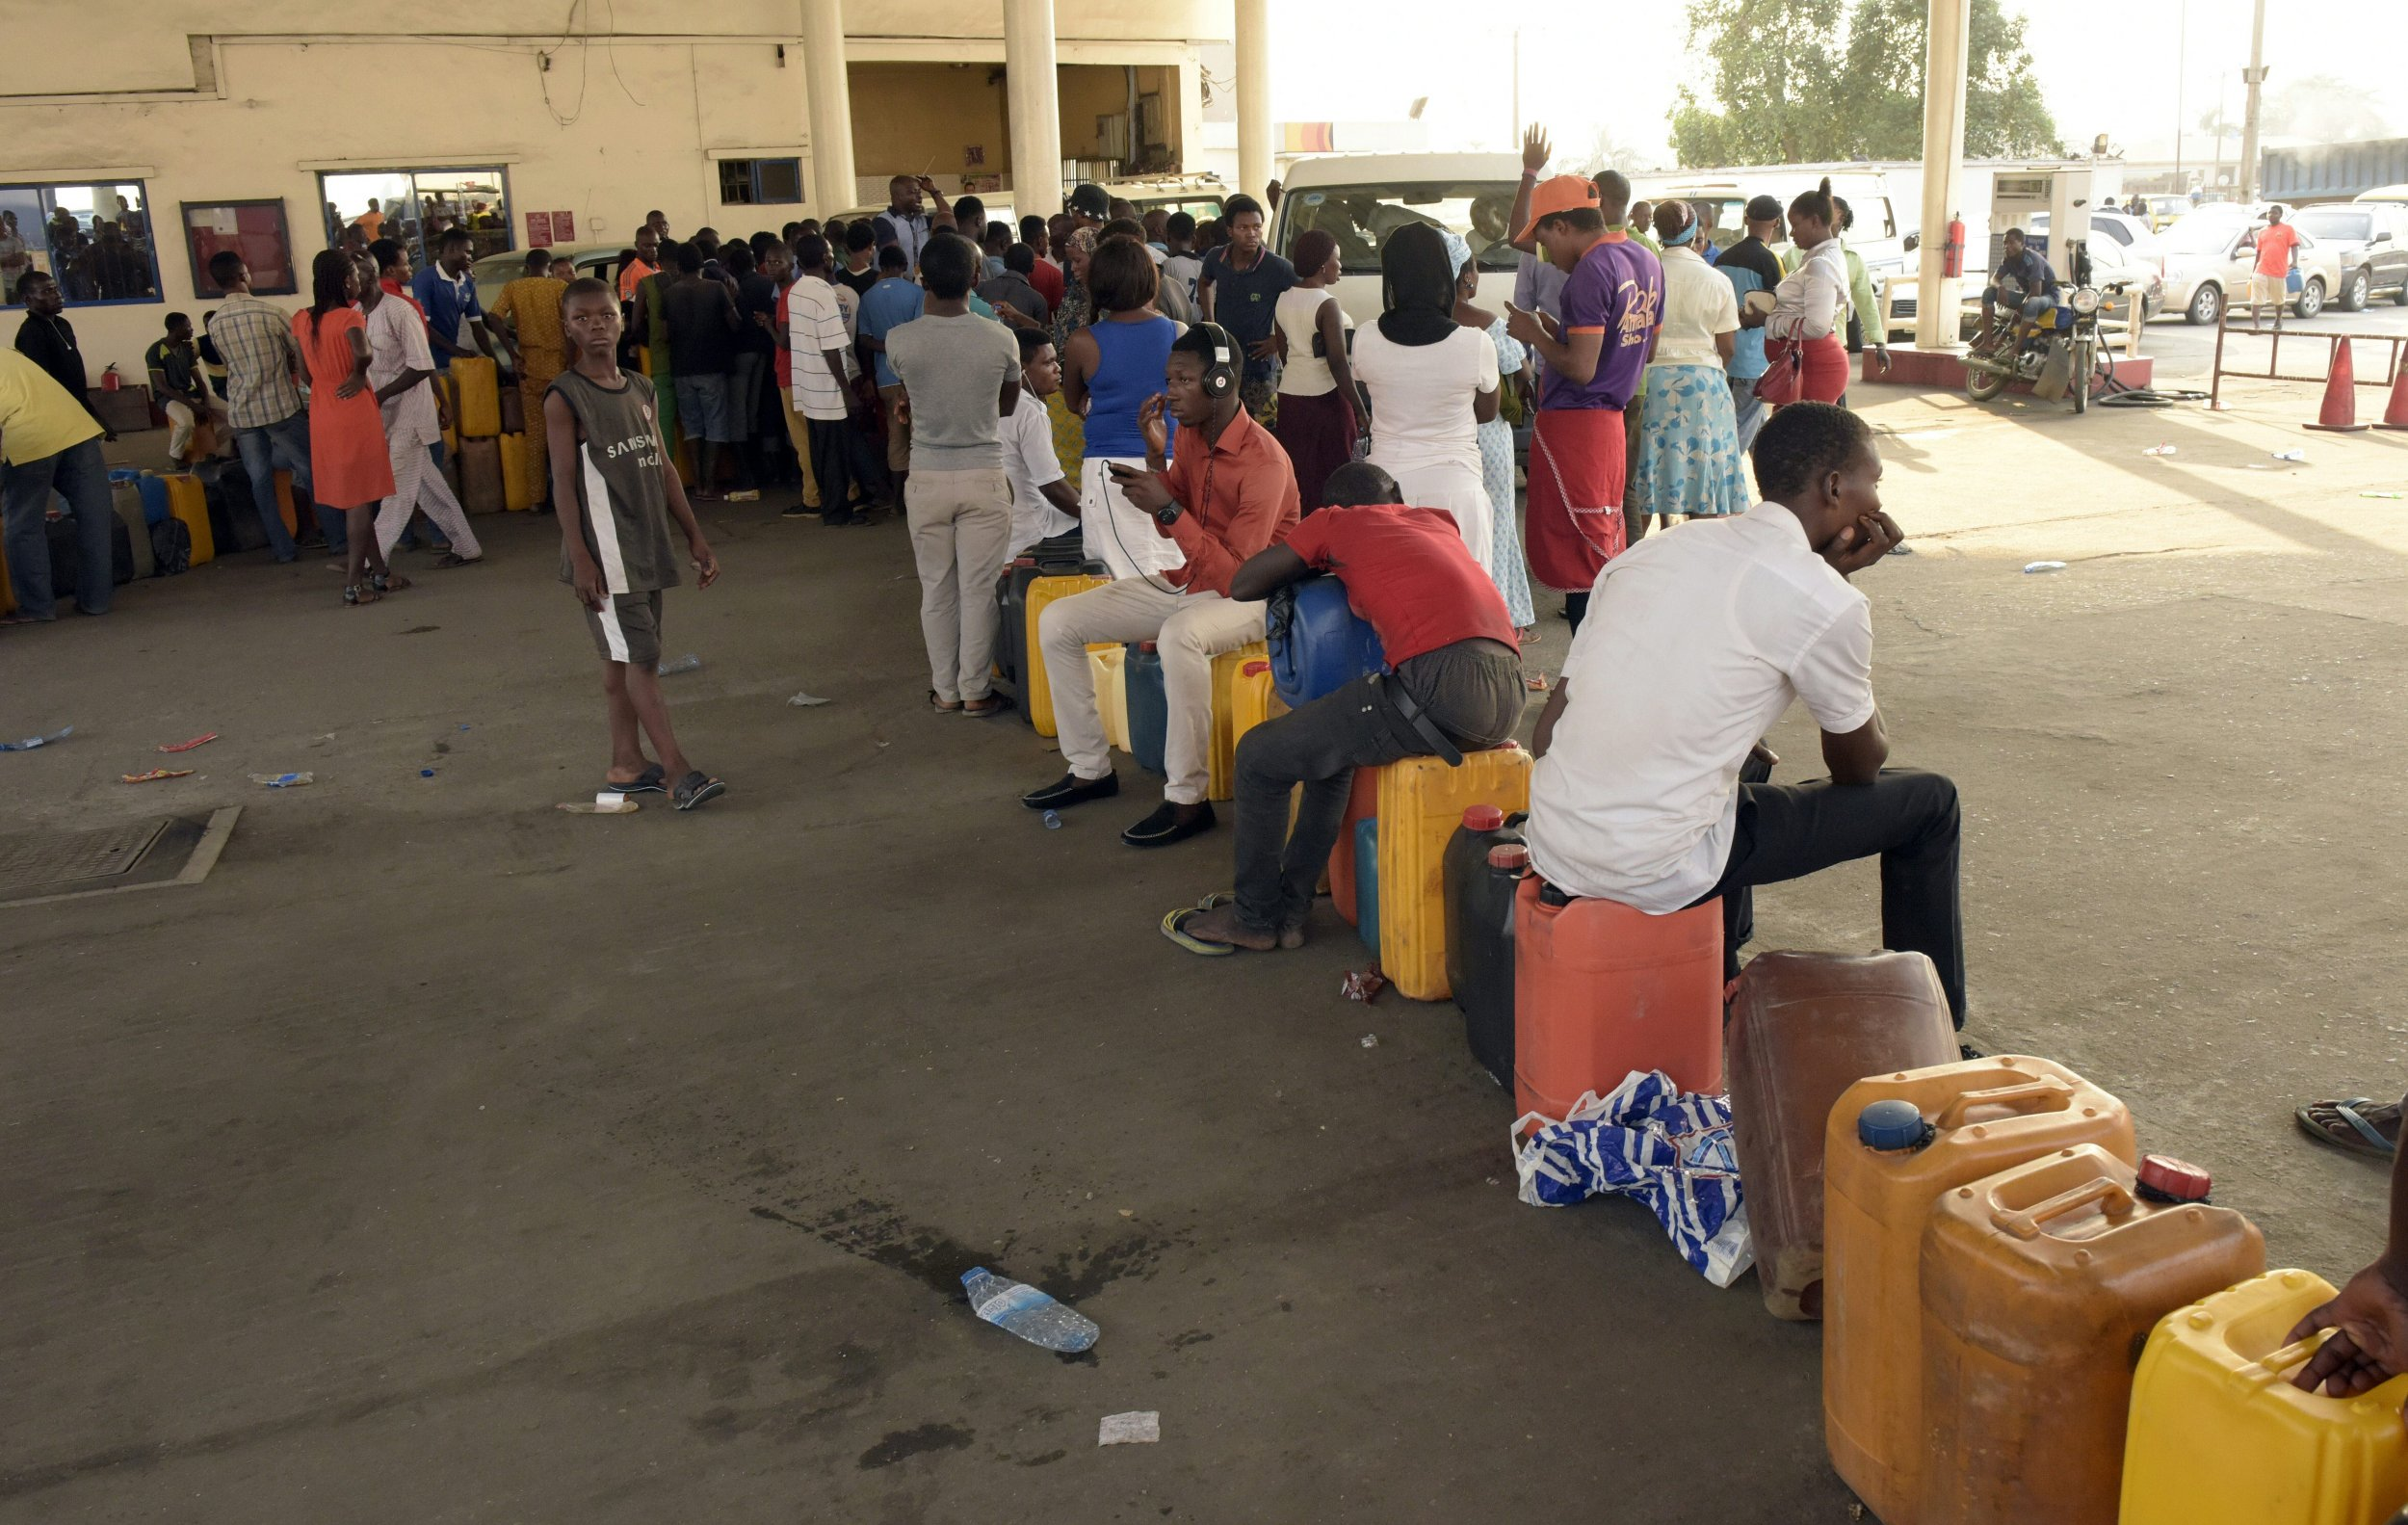 A fuel station line in Lagos, Nigeria.